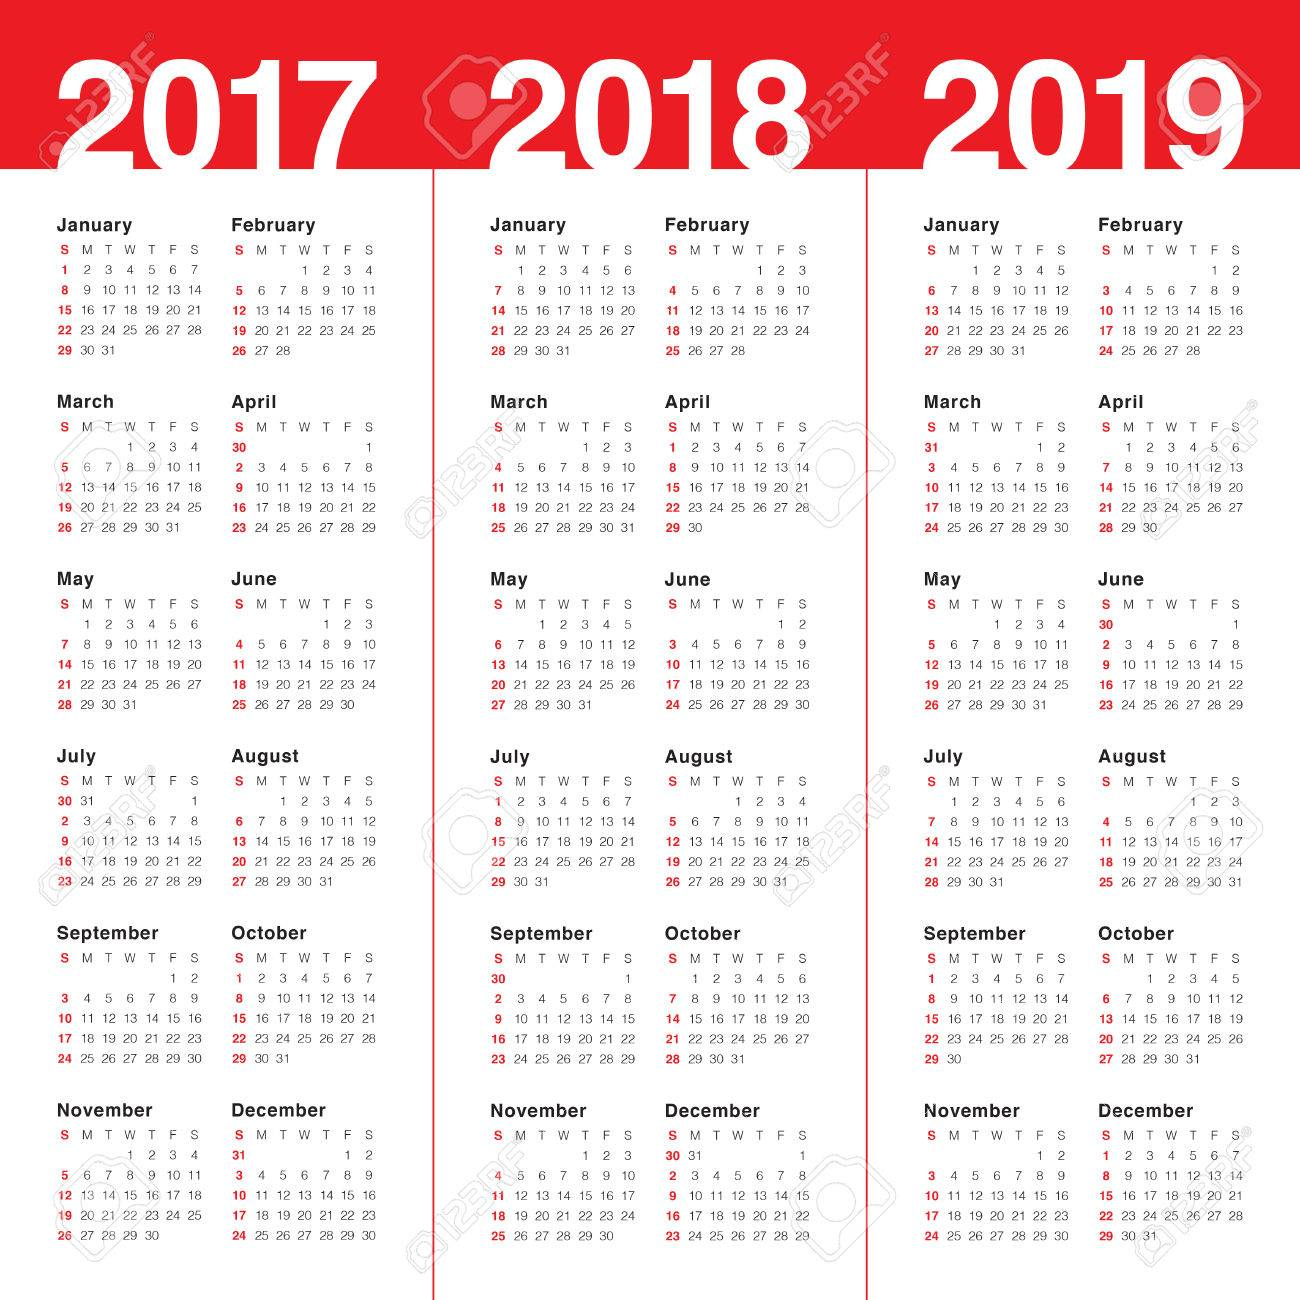 Simple Calendar Template For 2017, 2018 And 2019 Royalty Free ...